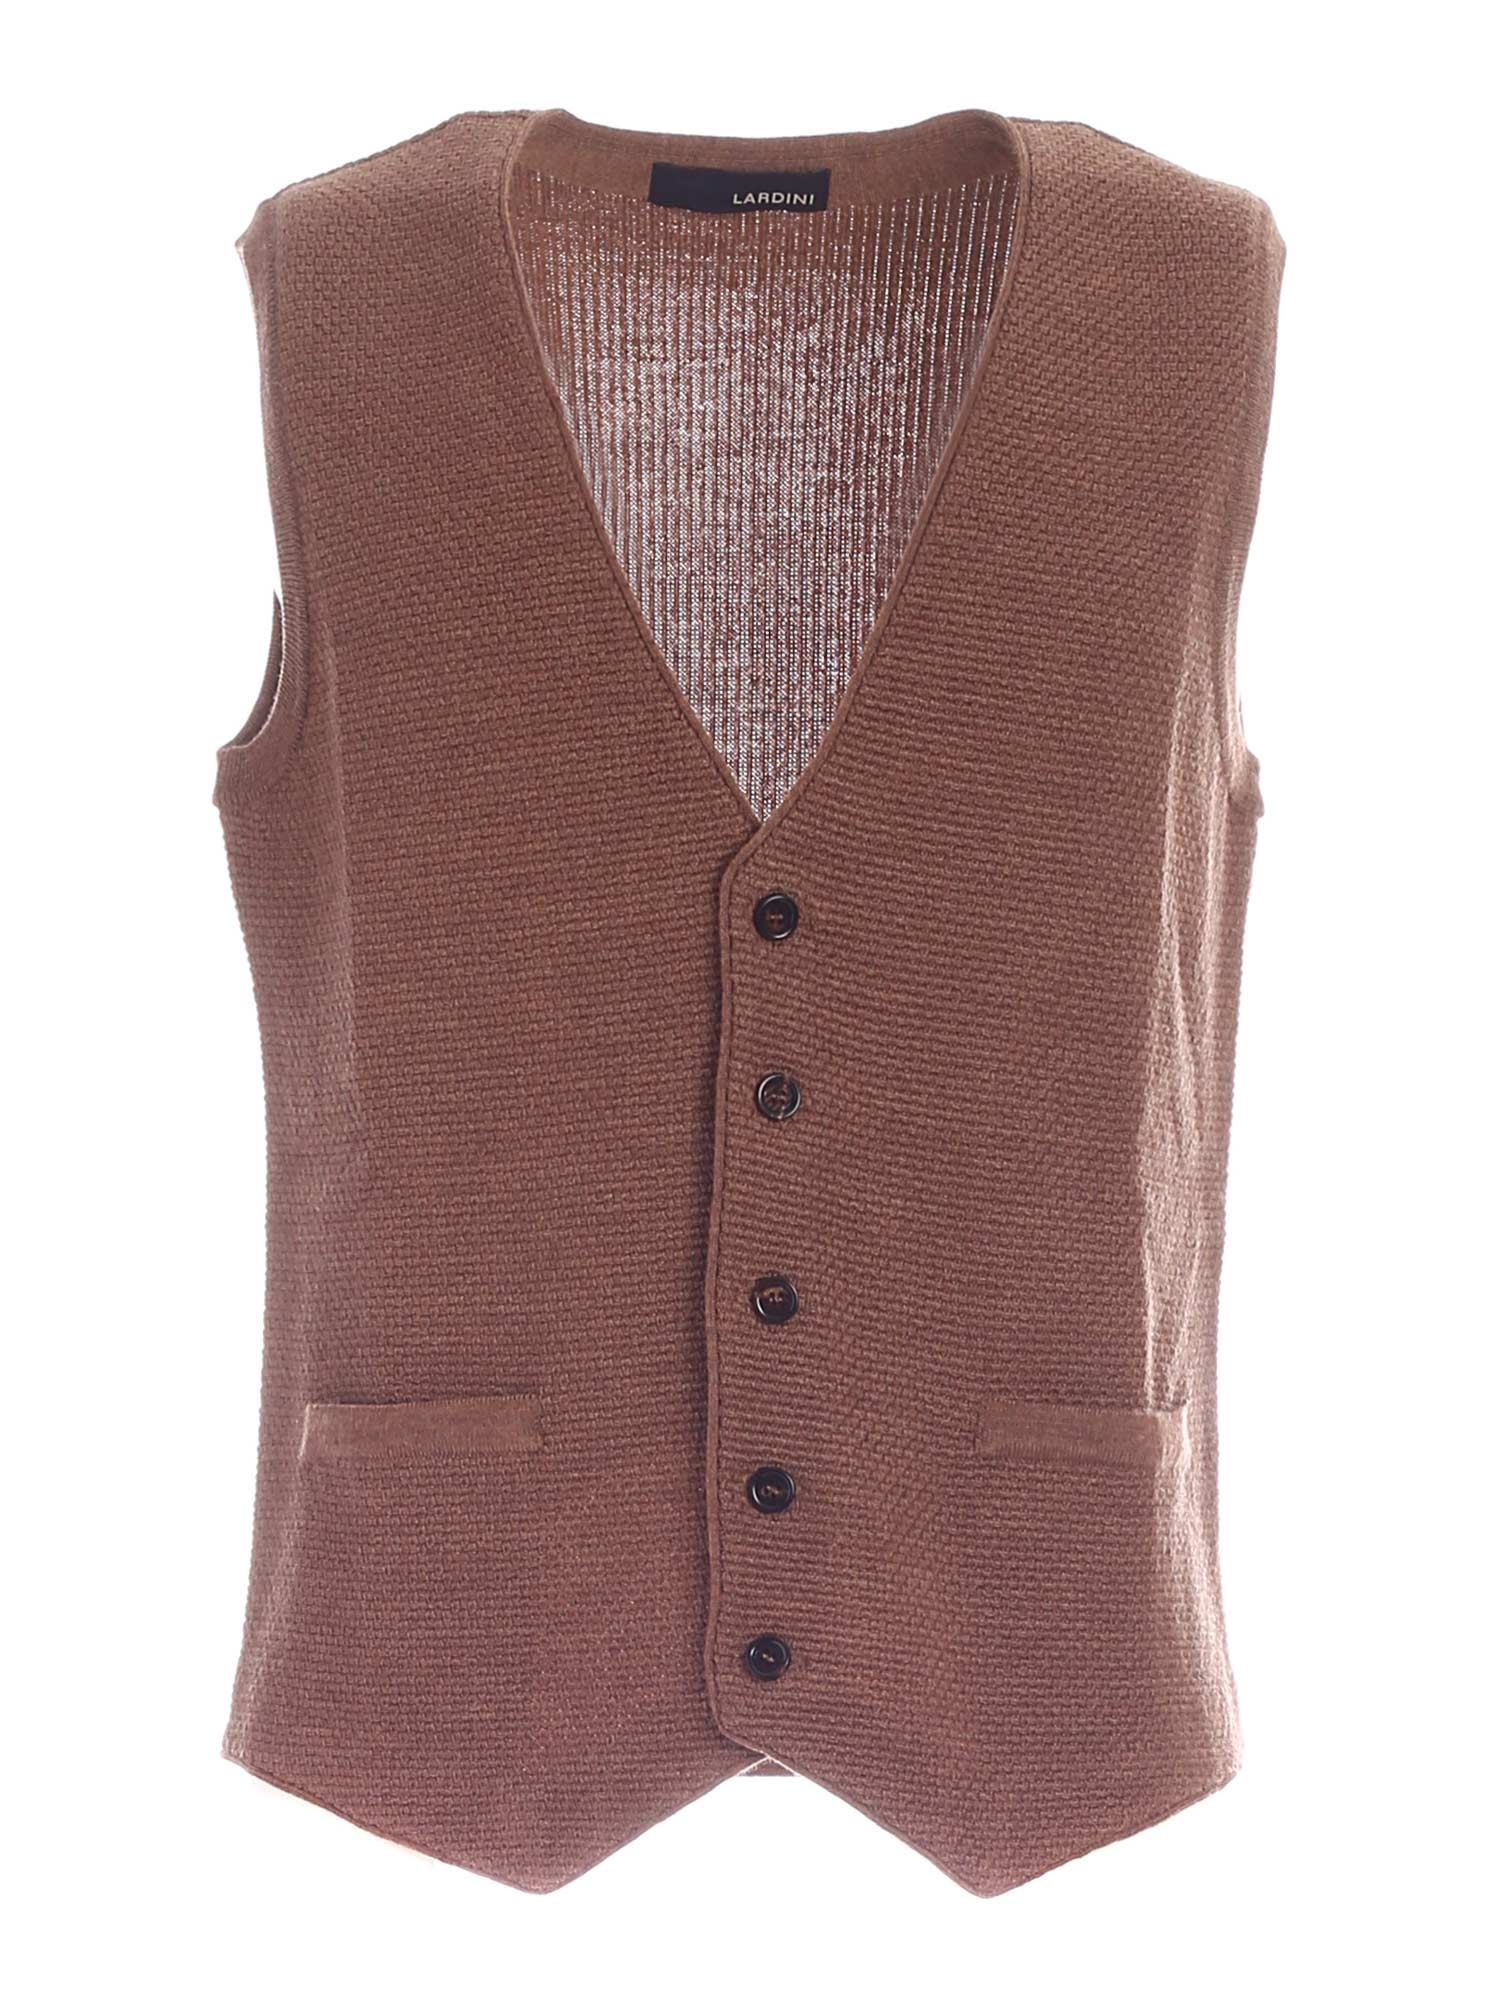 Lardini KNITTED VEST IN CAMEL COLOR